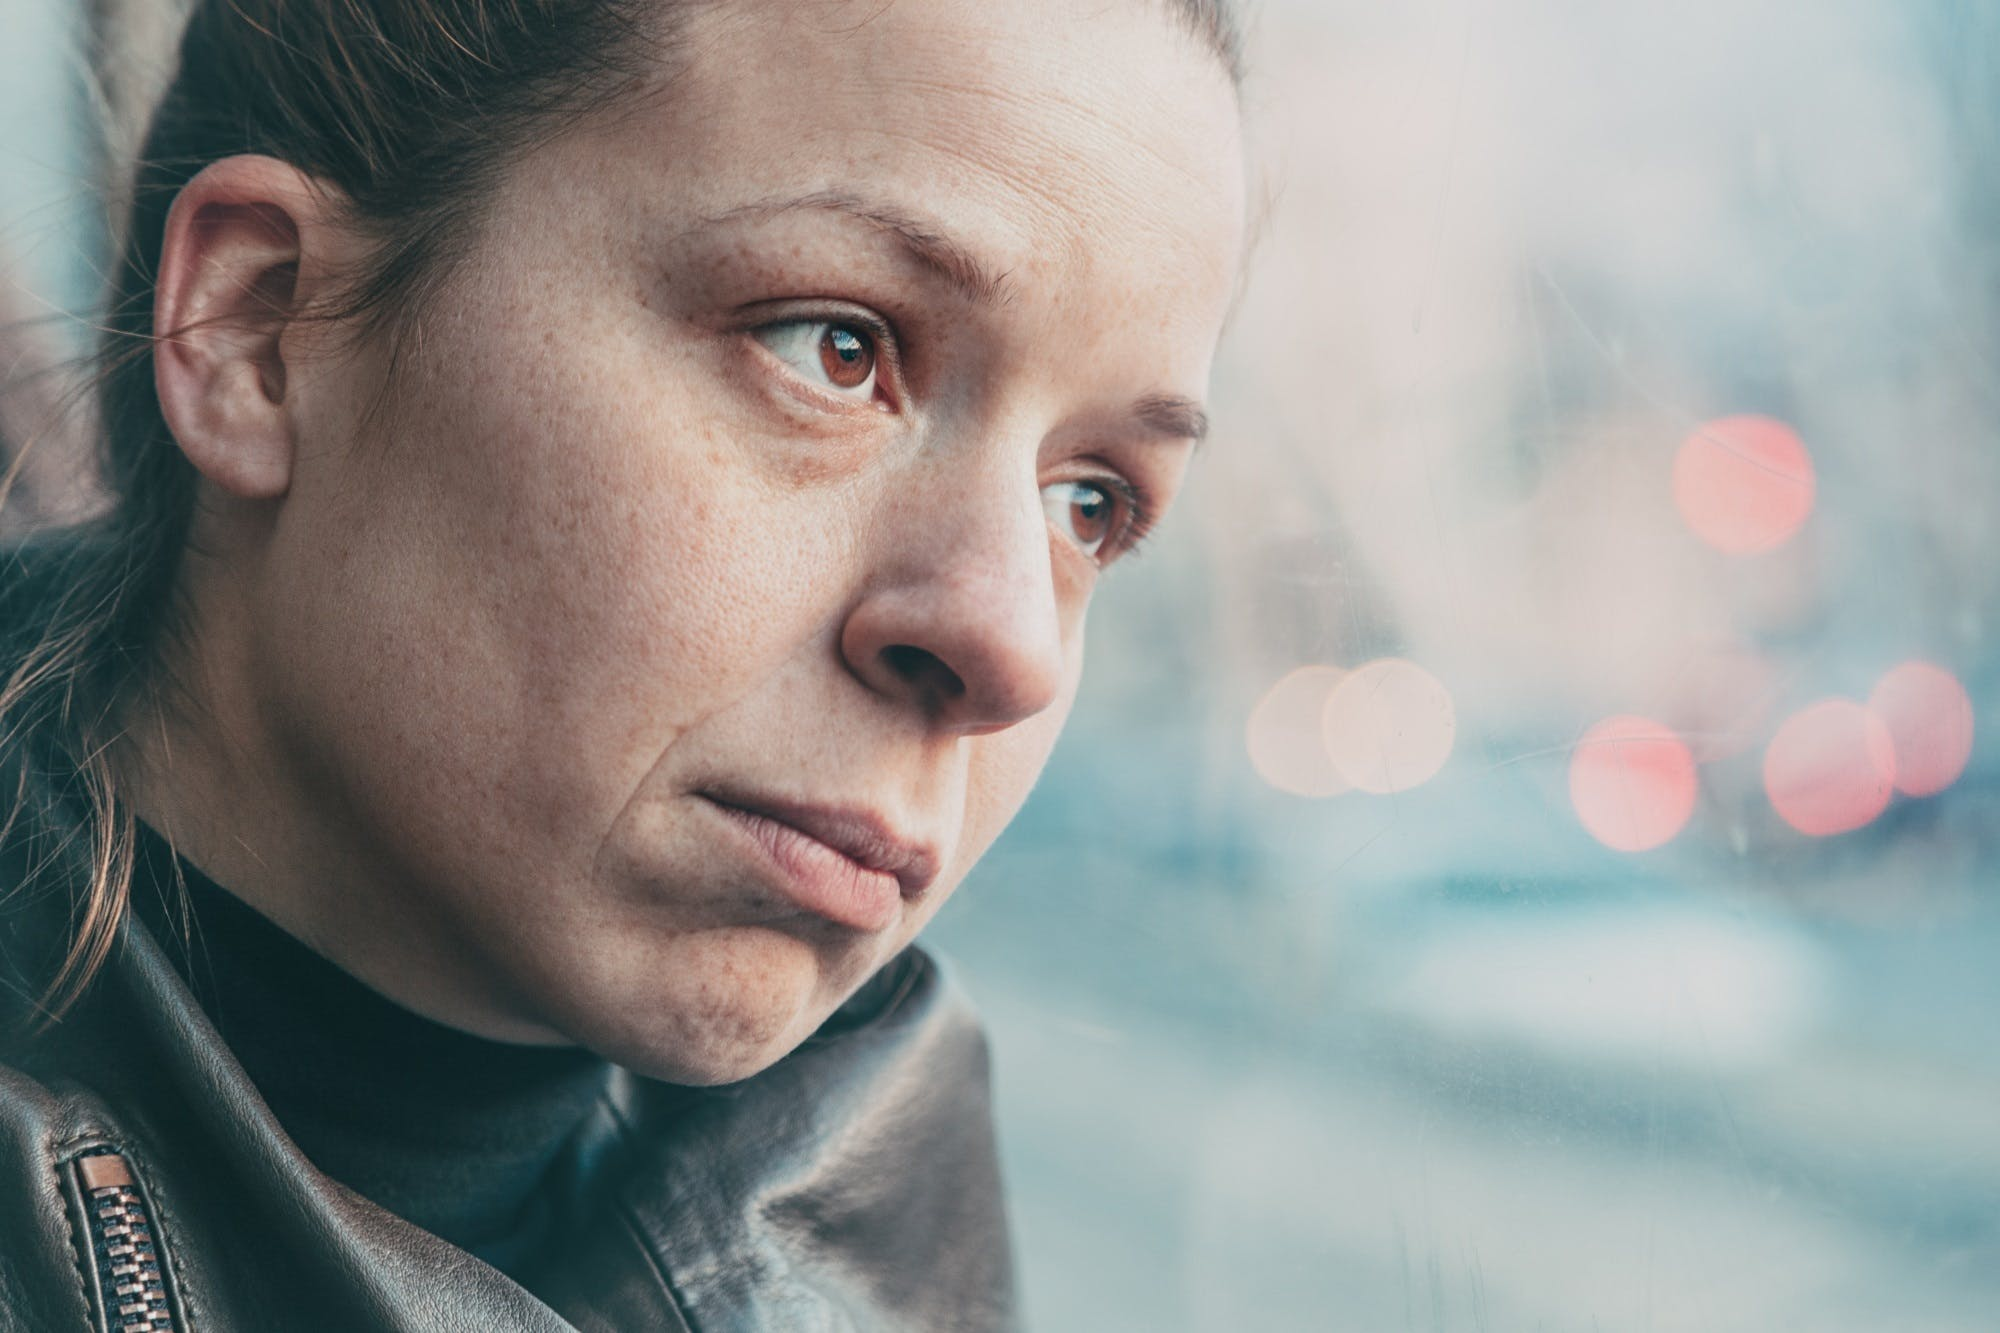 Woman In Streetcar Alone And Depressed Istock 518627980